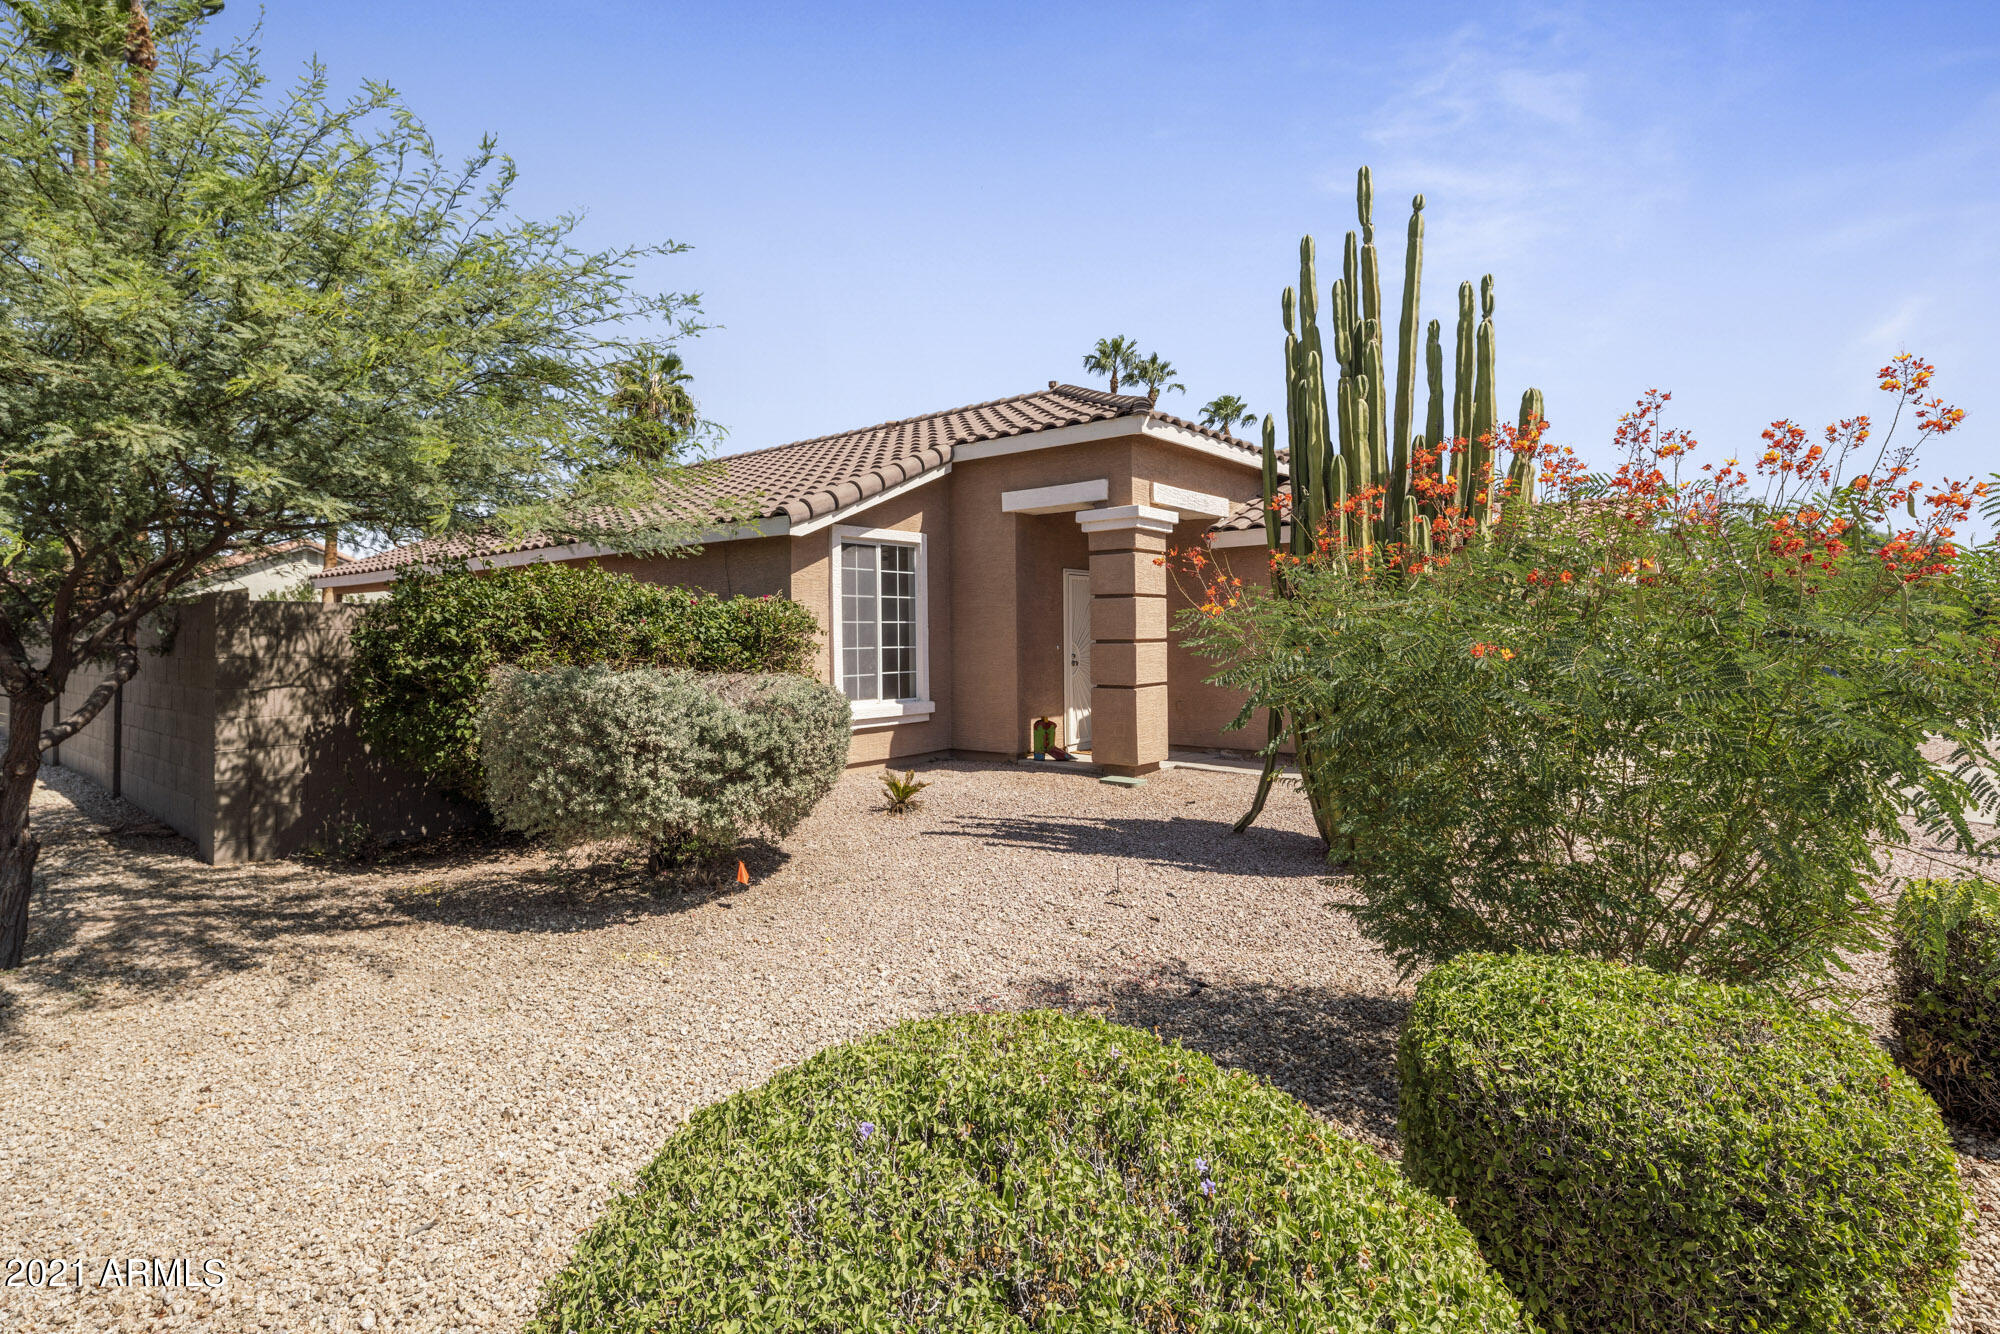 2254 E BROWNING Place, Chandler, AZ 85286, 3 Bedrooms Bedrooms, ,Residential,For Sale,2254 E BROWNING Place,6297789